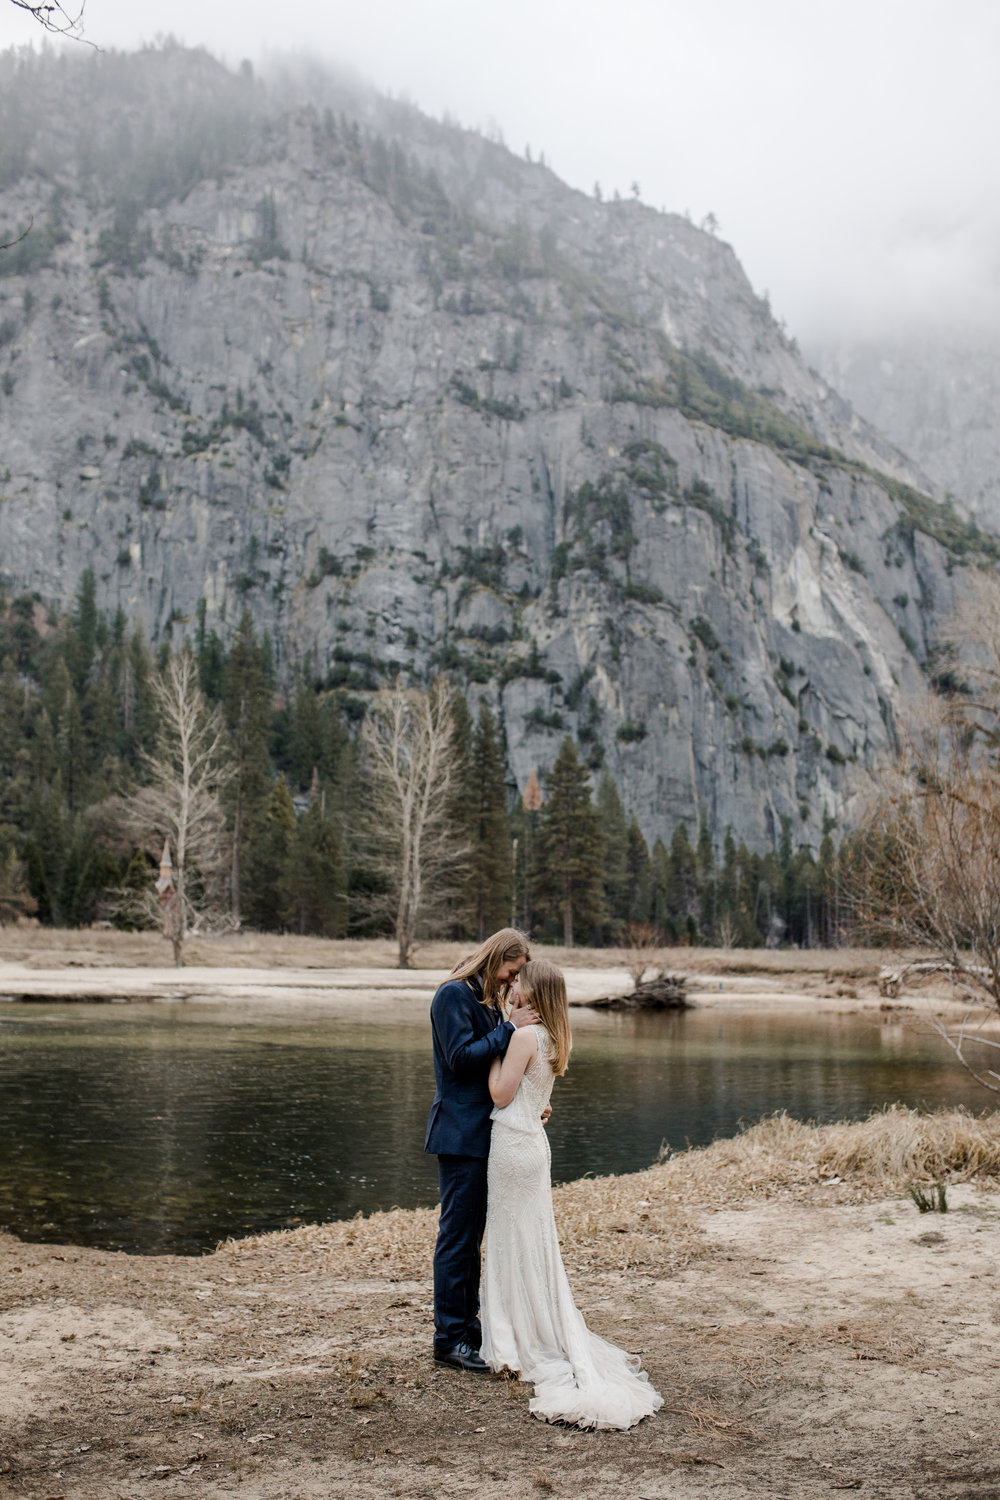 nicole-daacke-photography-yousemite-national-park-elopement-photographer-winter-cloud-moody-elope-inspiration-yosemite-valley-tunnel-view-winter-cloud-fog-weather-wedding-photos-31.jpg